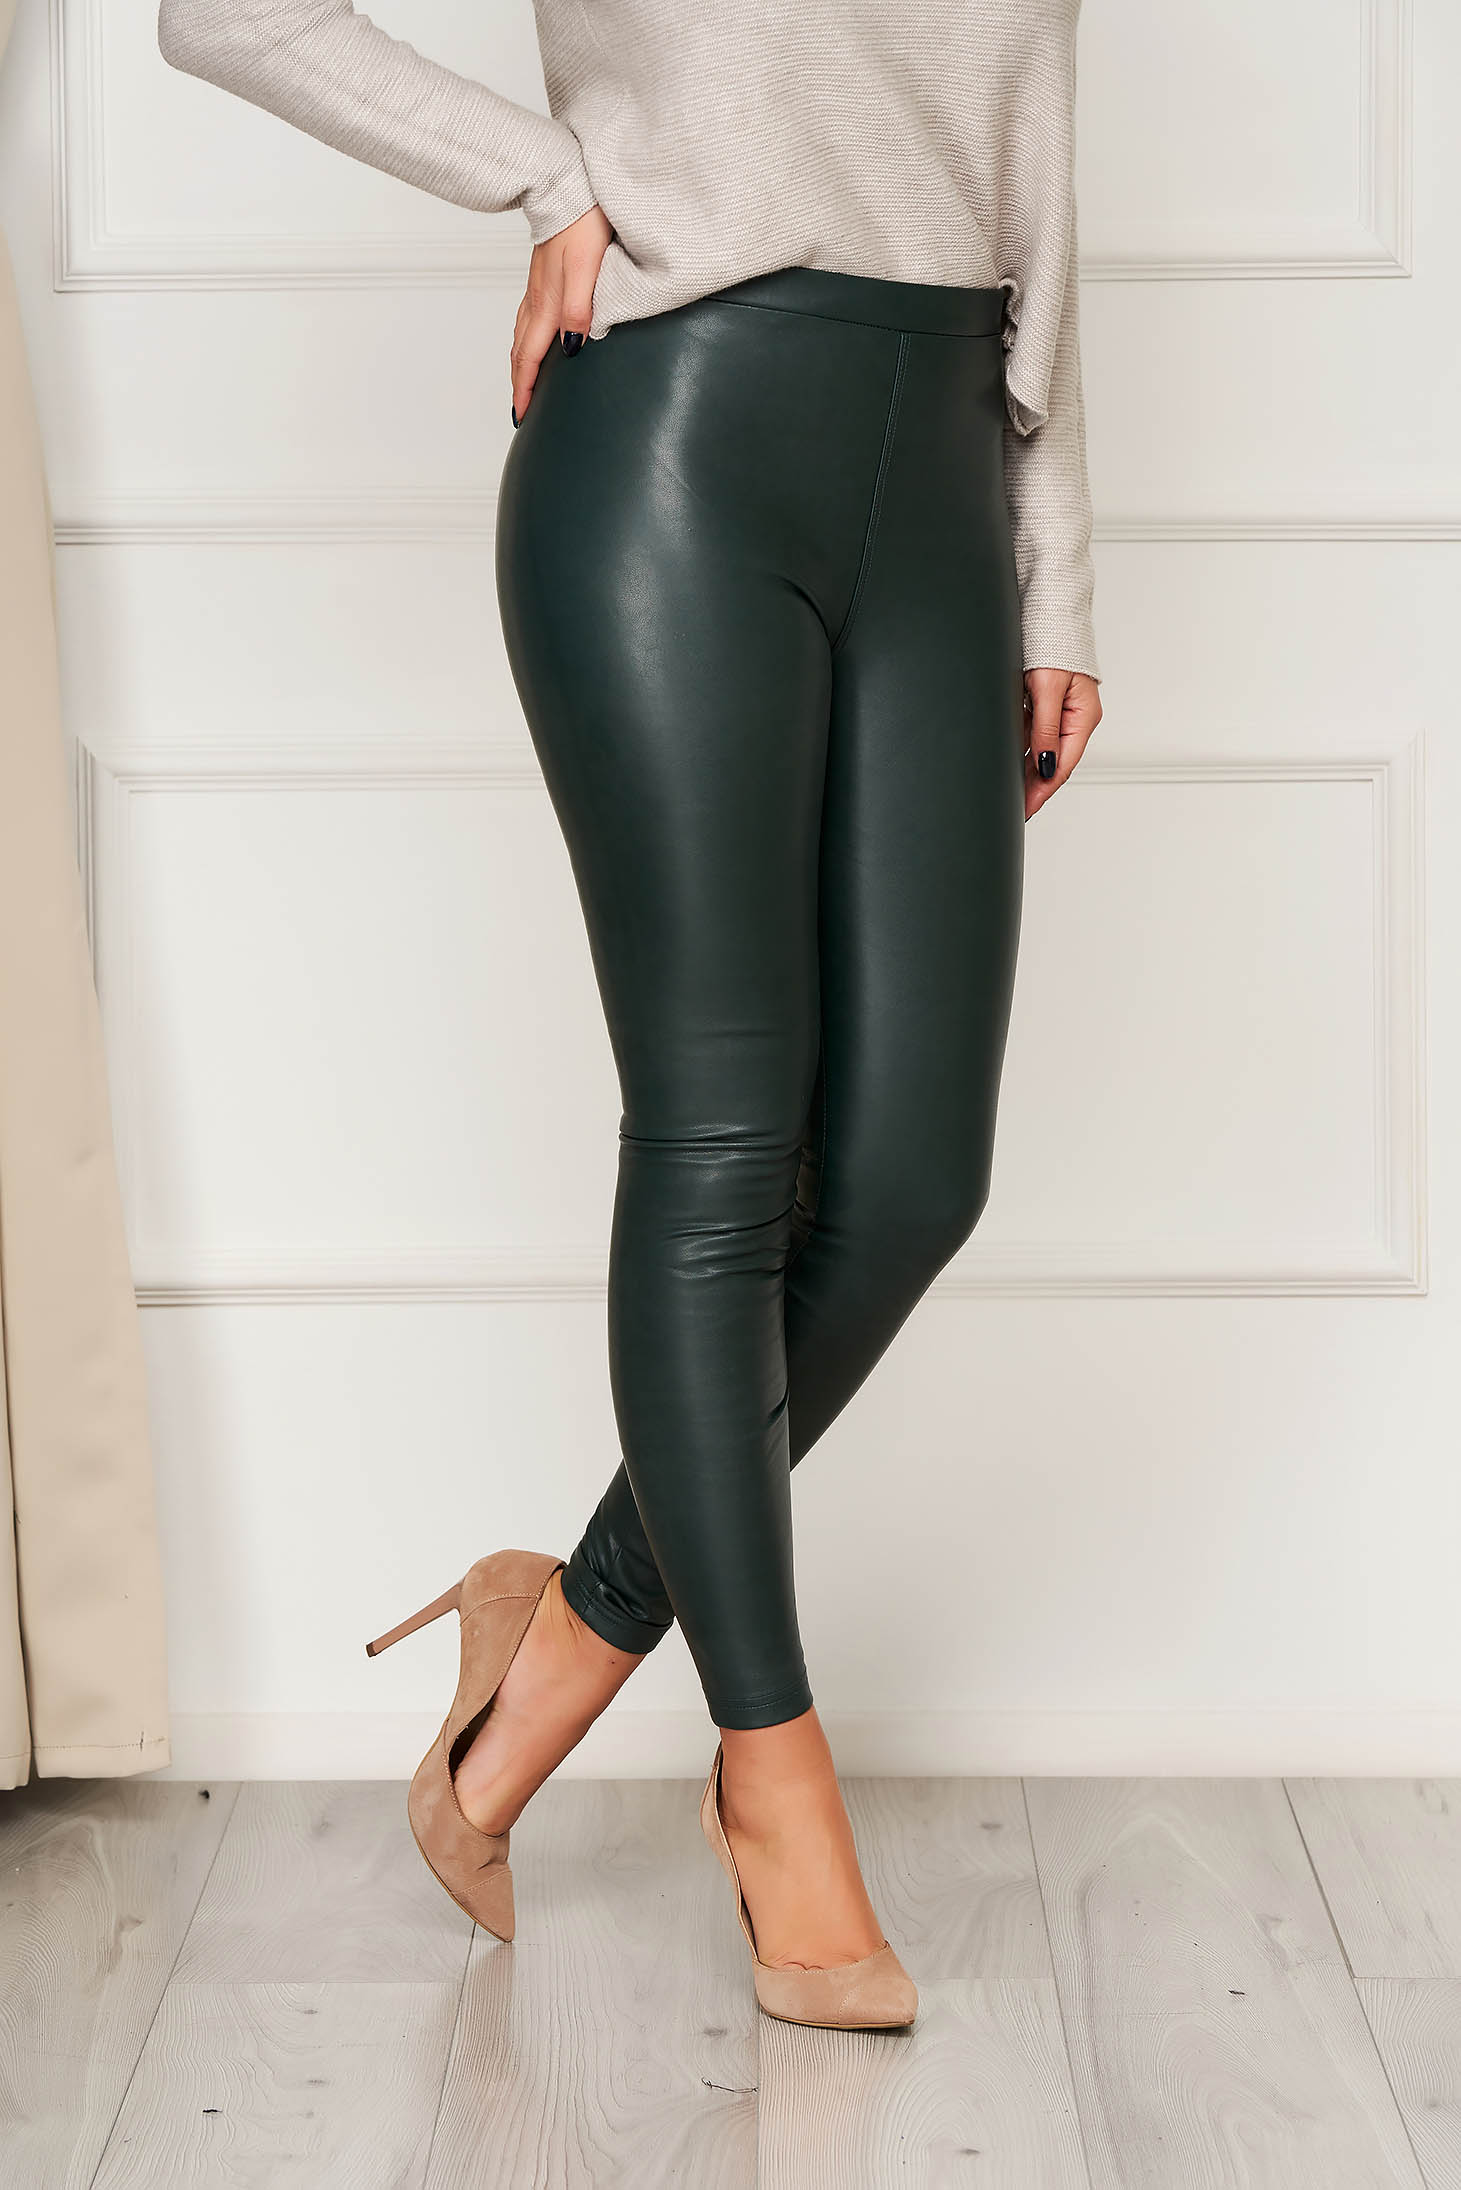 Darkgreen tights clubbing from ecological leather elastic waist high waisted